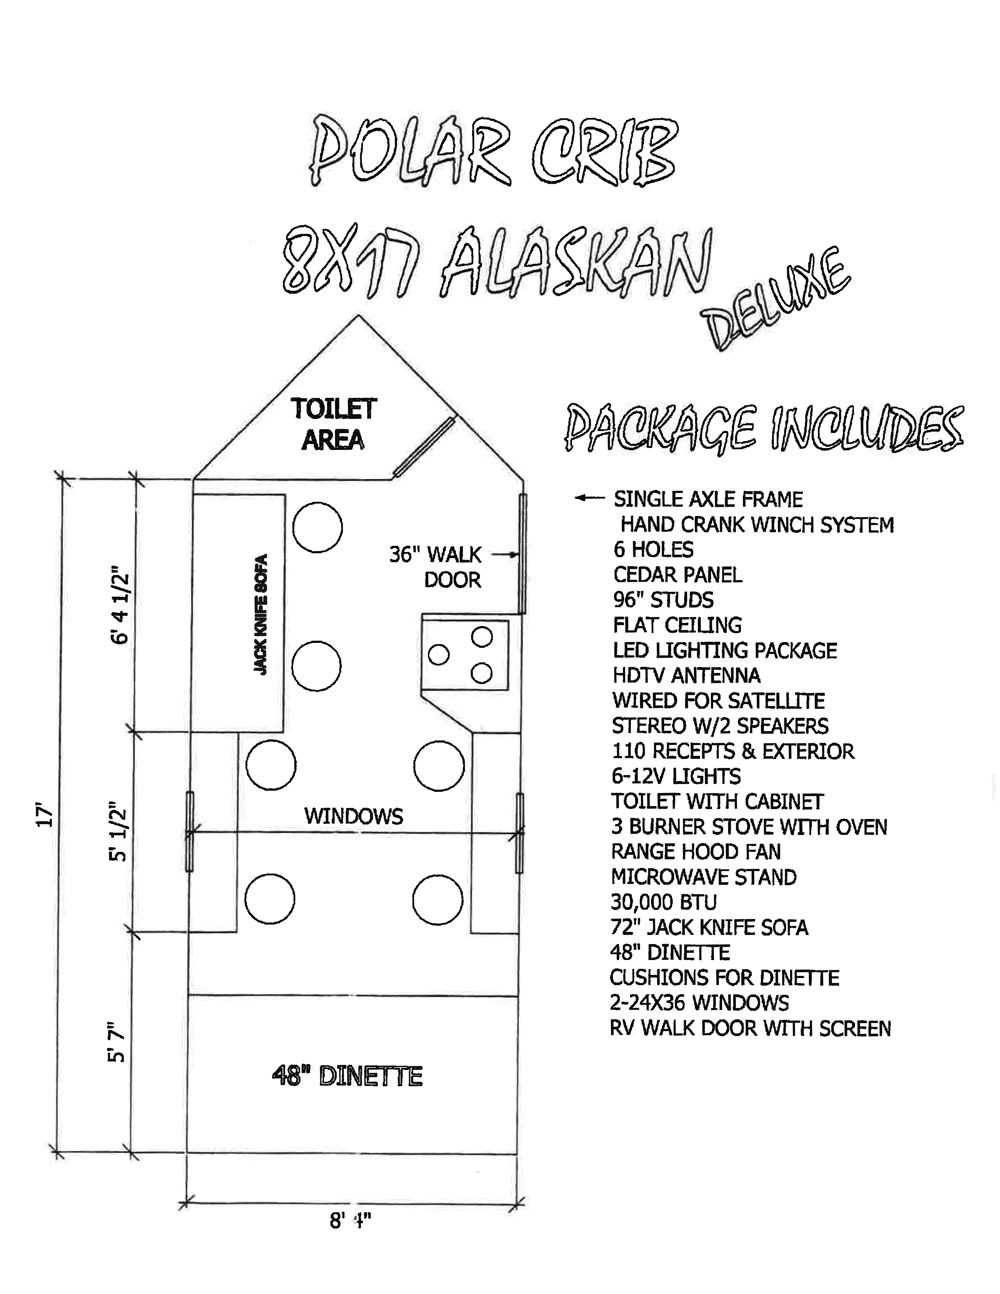 07 Polar Crib Alaskan Delux Floor Plans